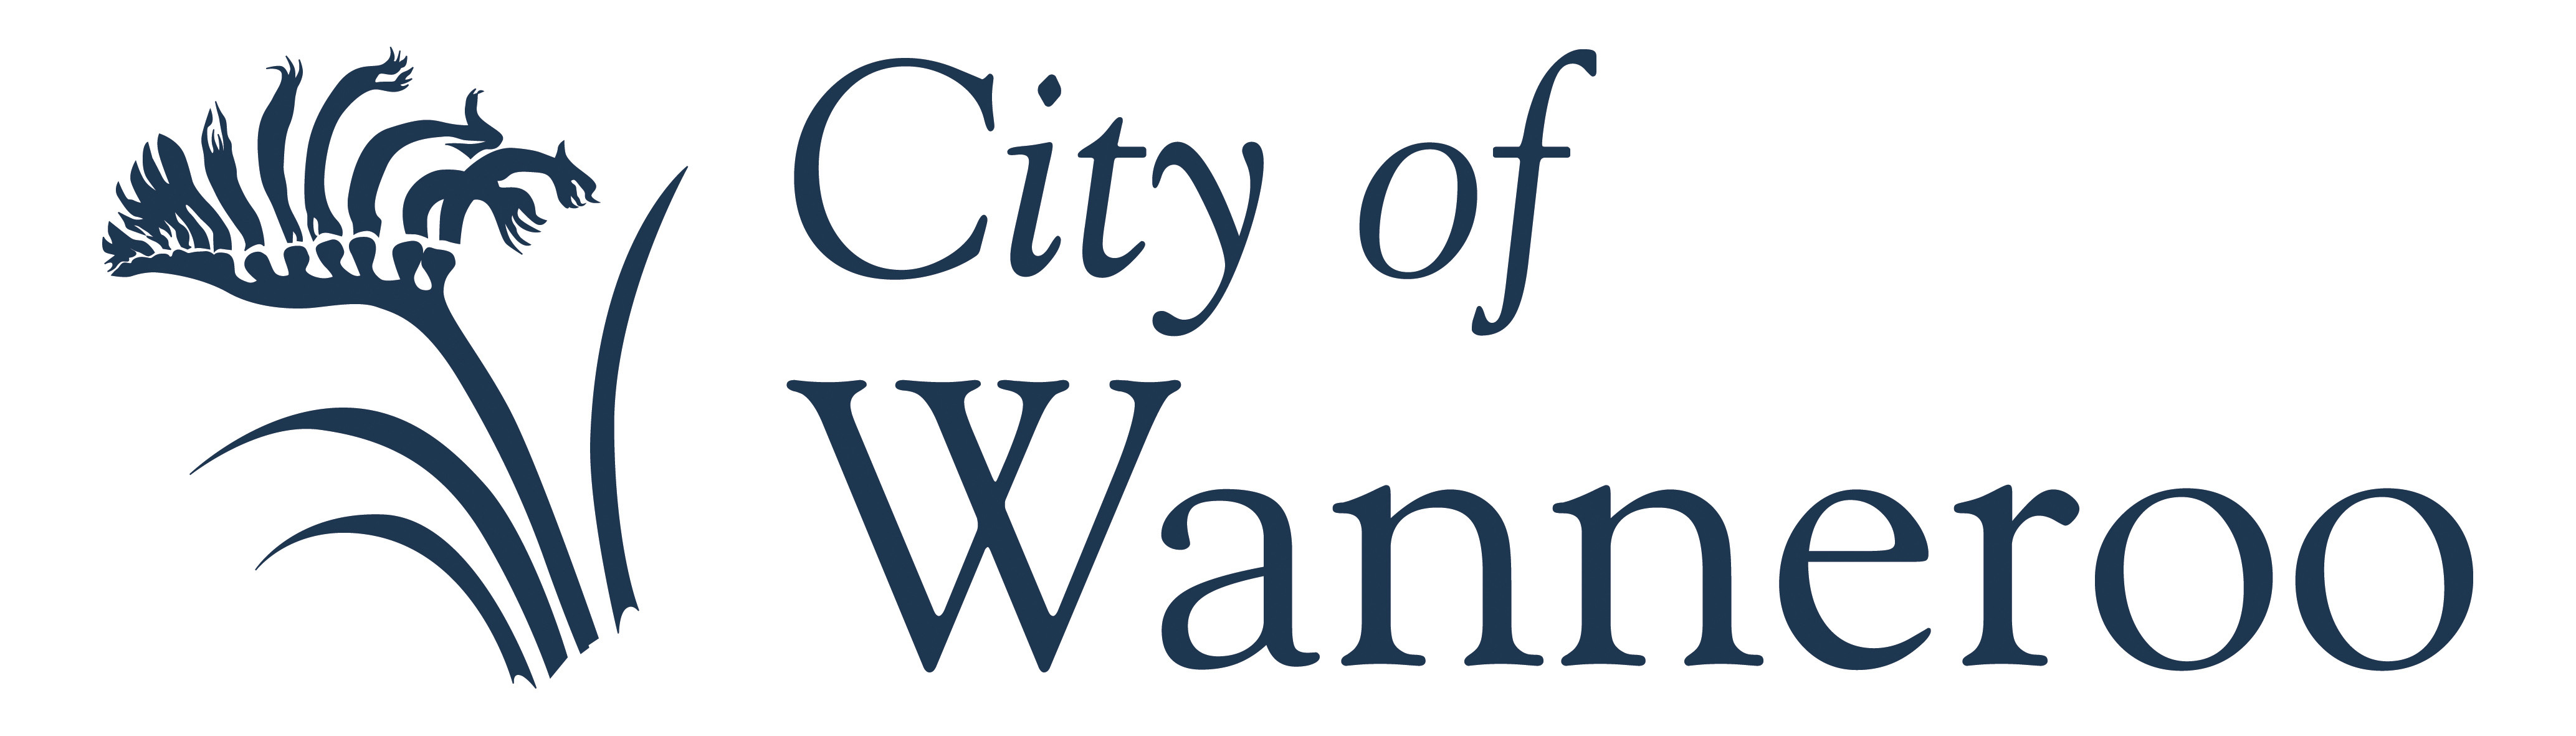 city-of-wanneroo1